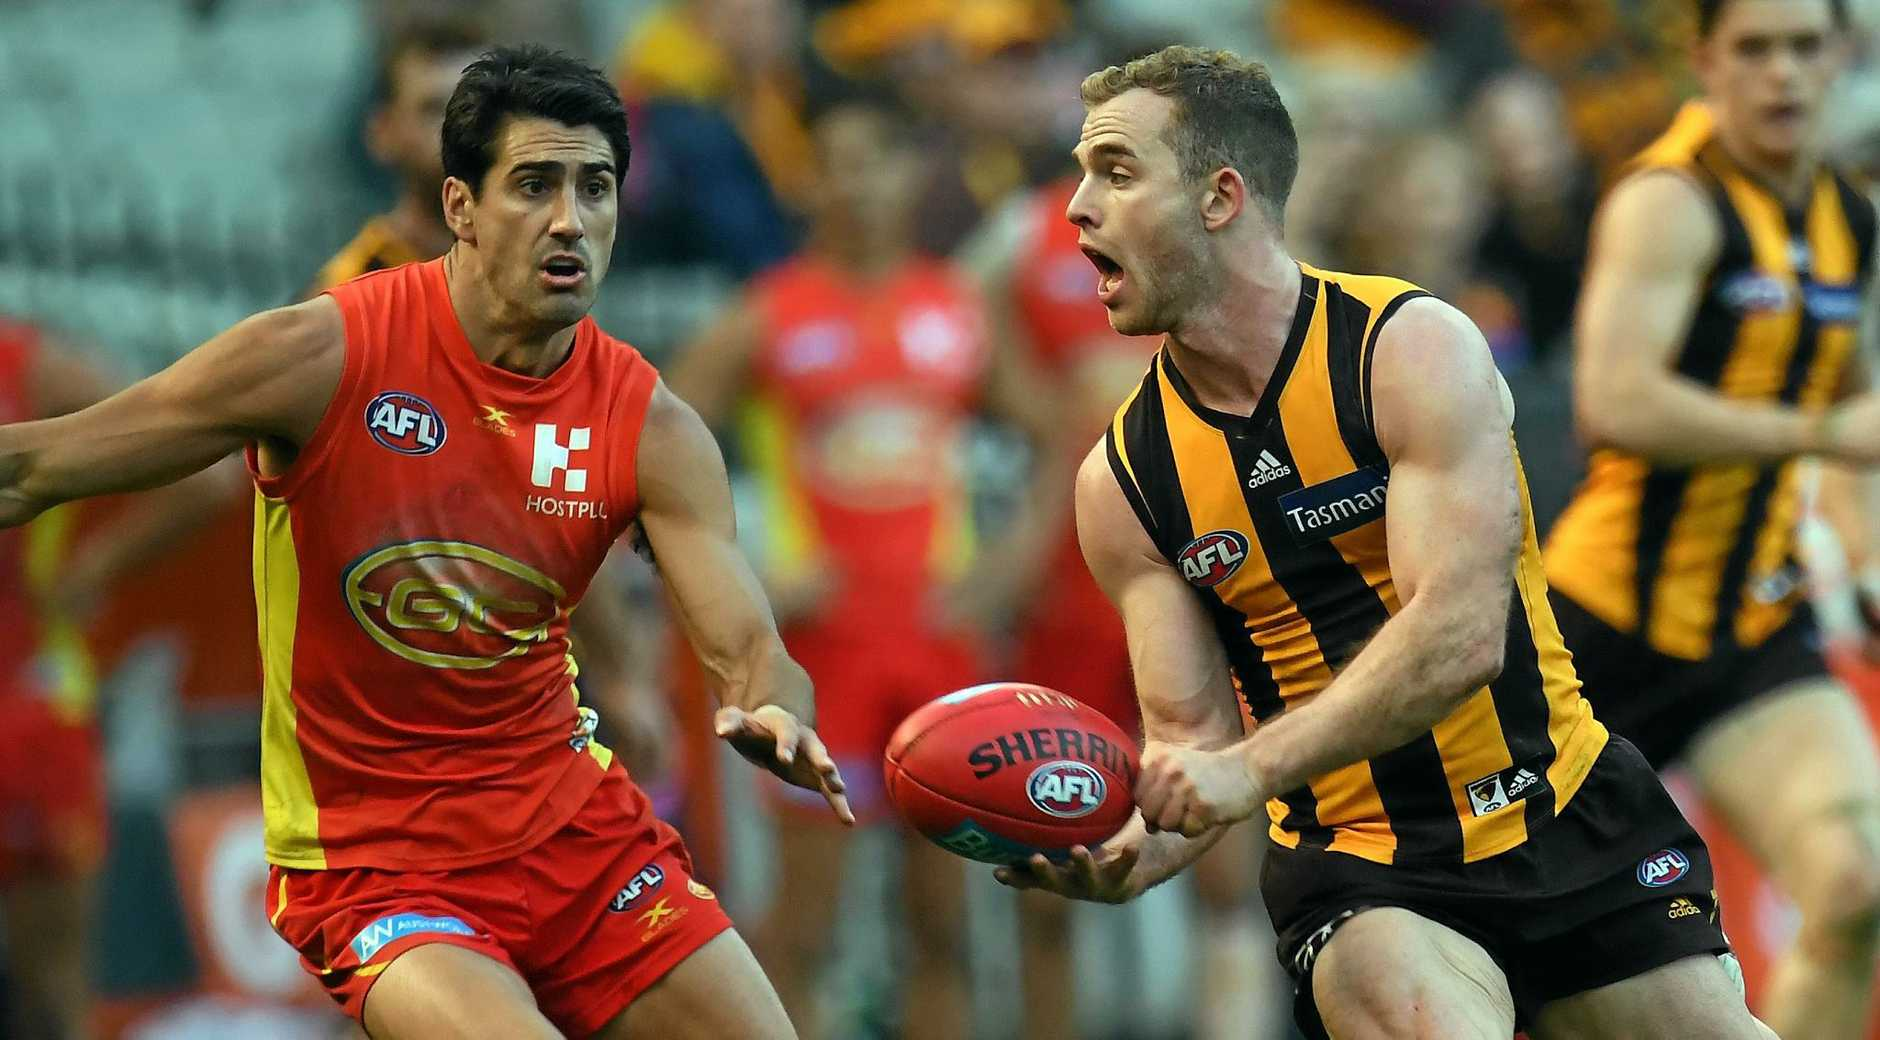 Tom Mitchell of the Hawks and Matt Rosa of the Suns (left) contest during the Round 12 AFL match between the Hawthorn Hawks and the Gold Coast Suns at the MCG in Melbourne, Saturday, June 10, 2017. (AAP Image/Julian Smith) NO ARCHIVING, EDITORIAL USE ONLY